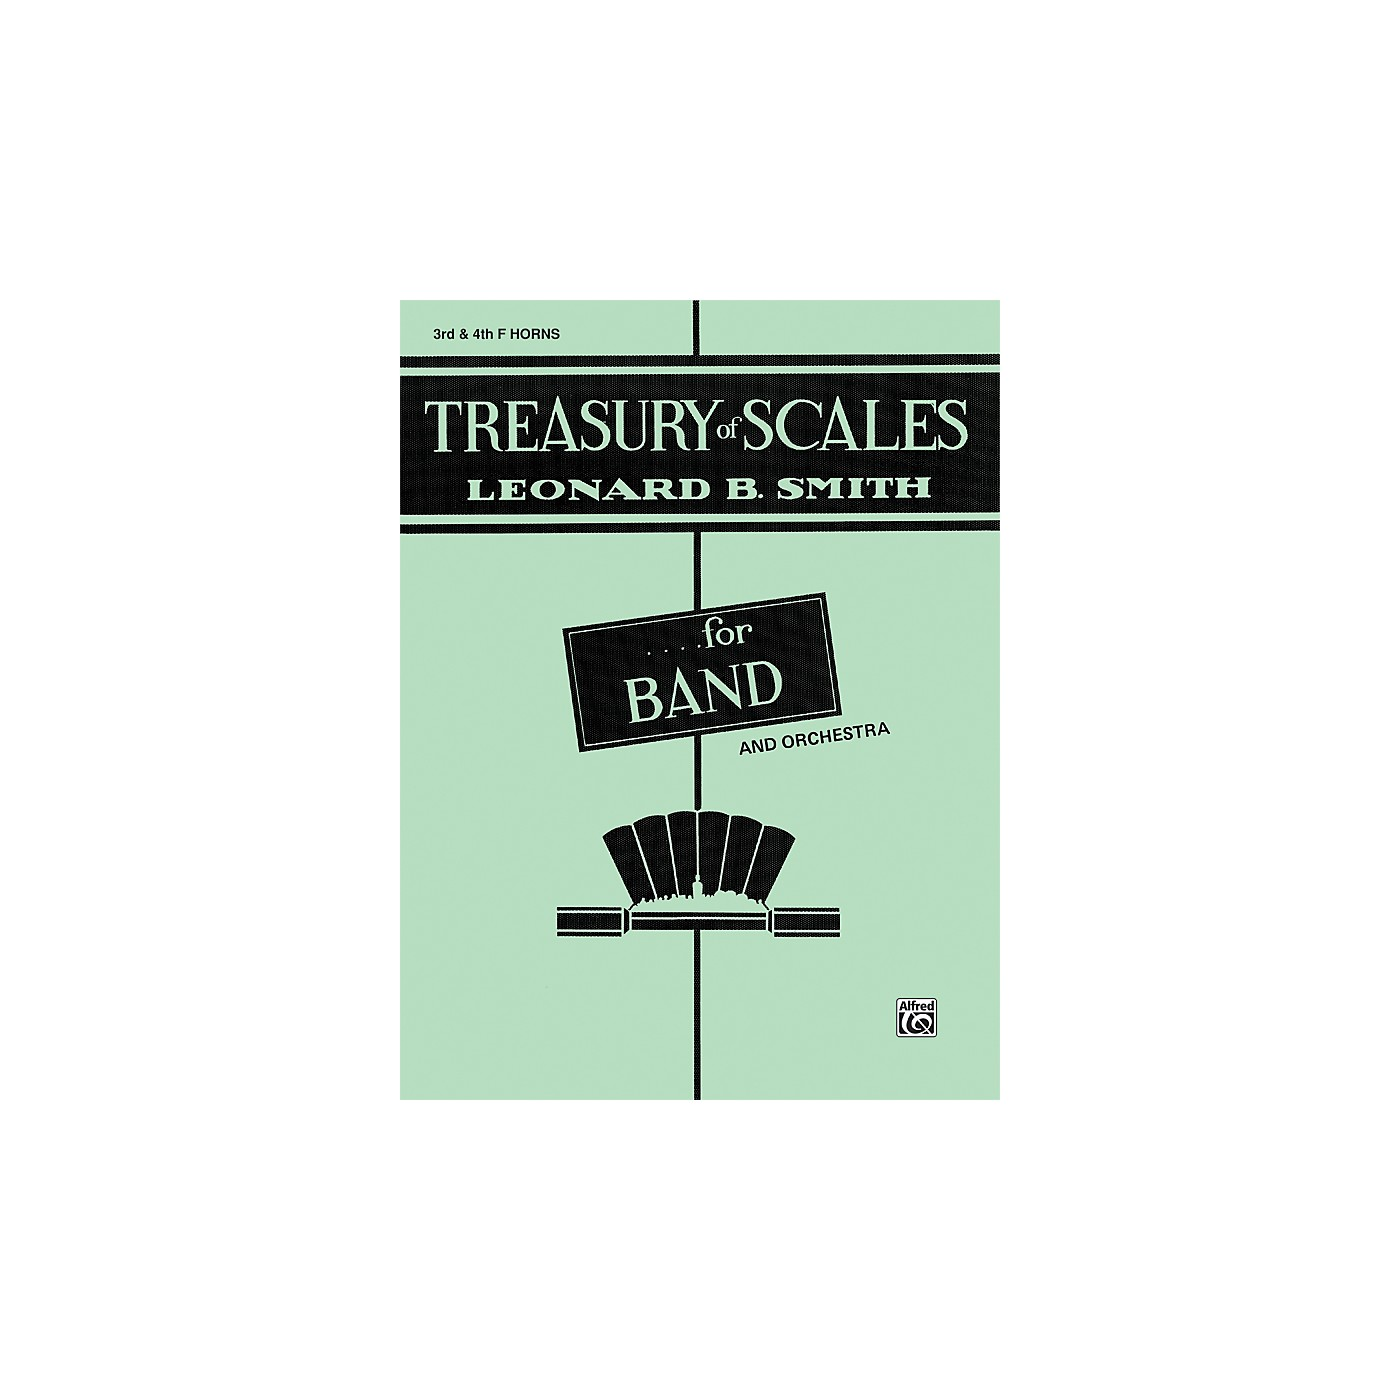 Alfred Treasury of Scales for Band and Orchestra 3rd & 4th F Horns thumbnail